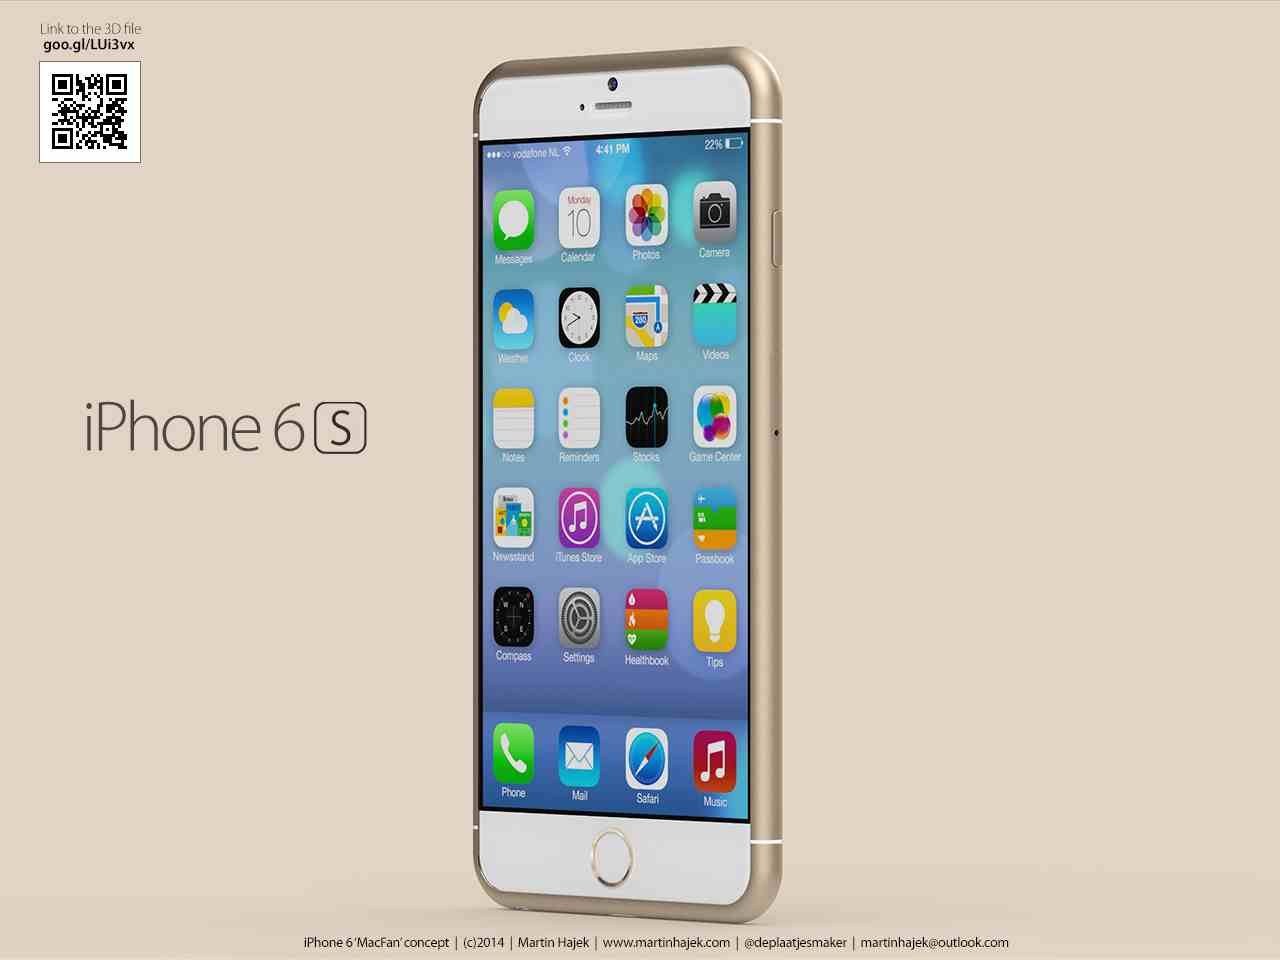 Apple-iPhone-6s-and-6c-concept (2)